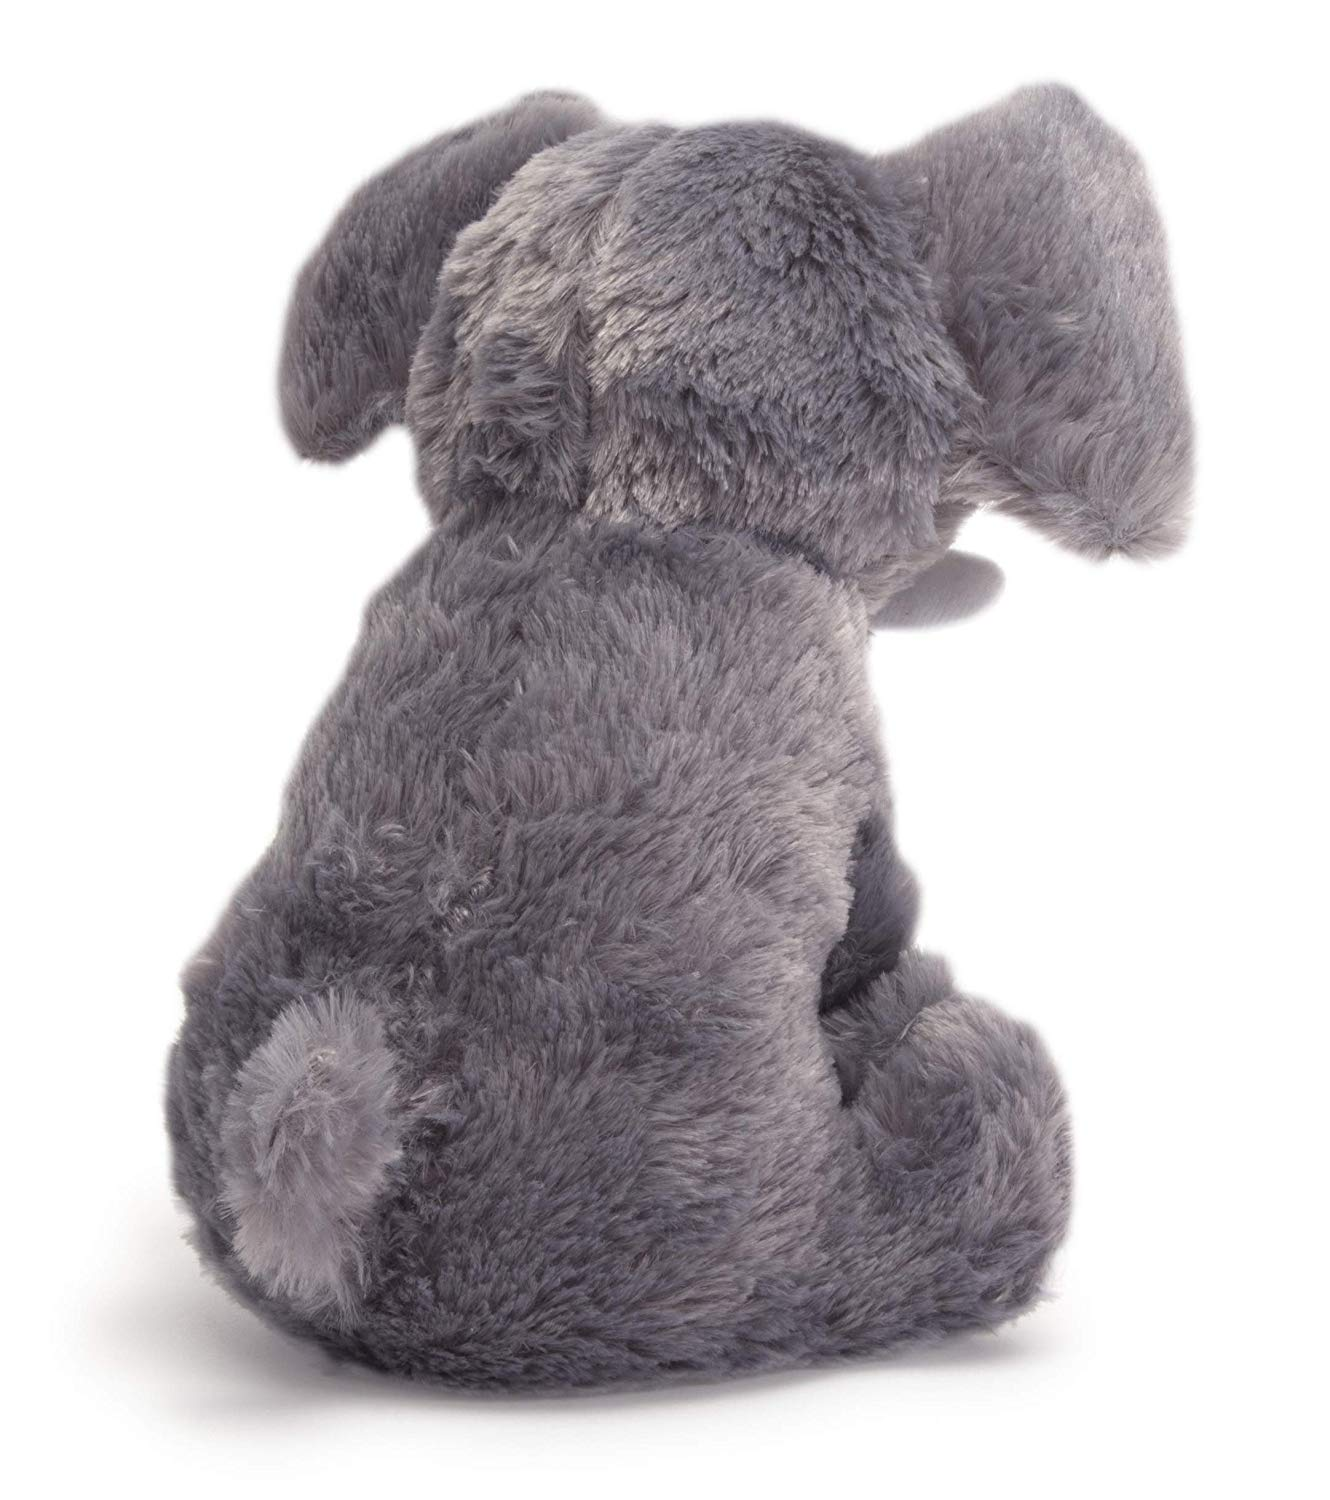 Elly the Smelly Elephant Plush Toy